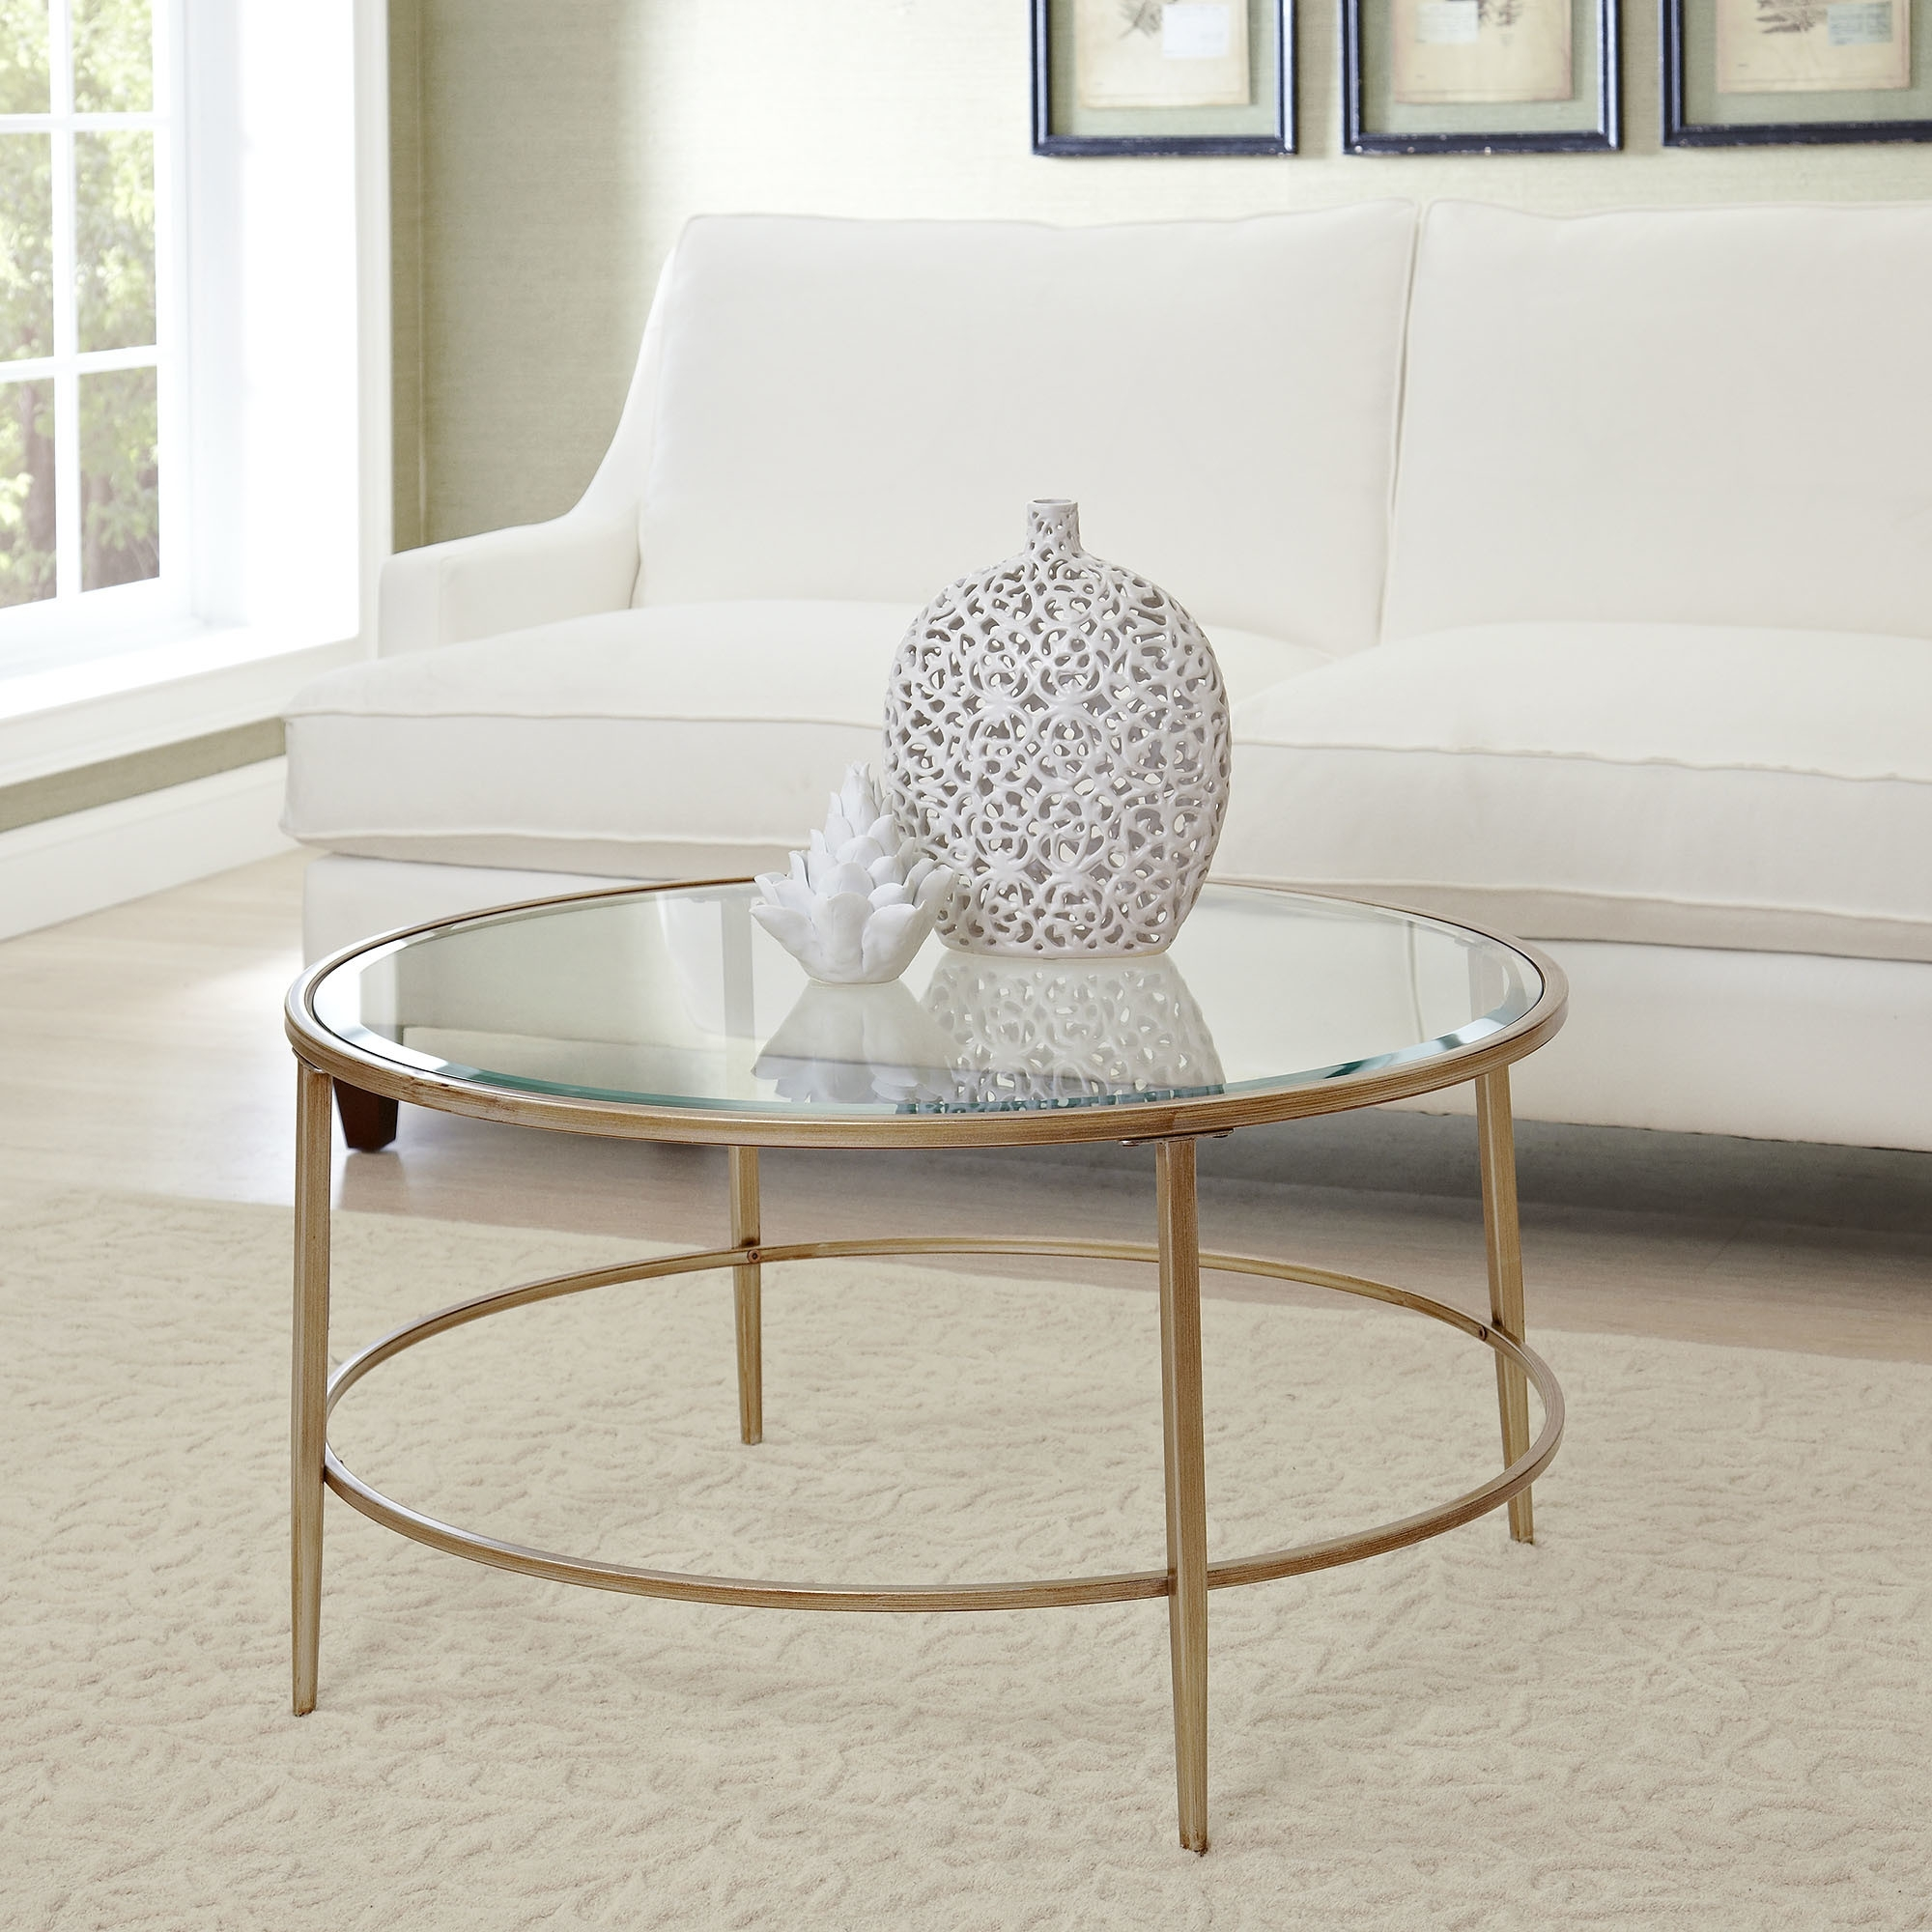 Exciting Small Glass Coffee Table Style Design (View 5 of 20)